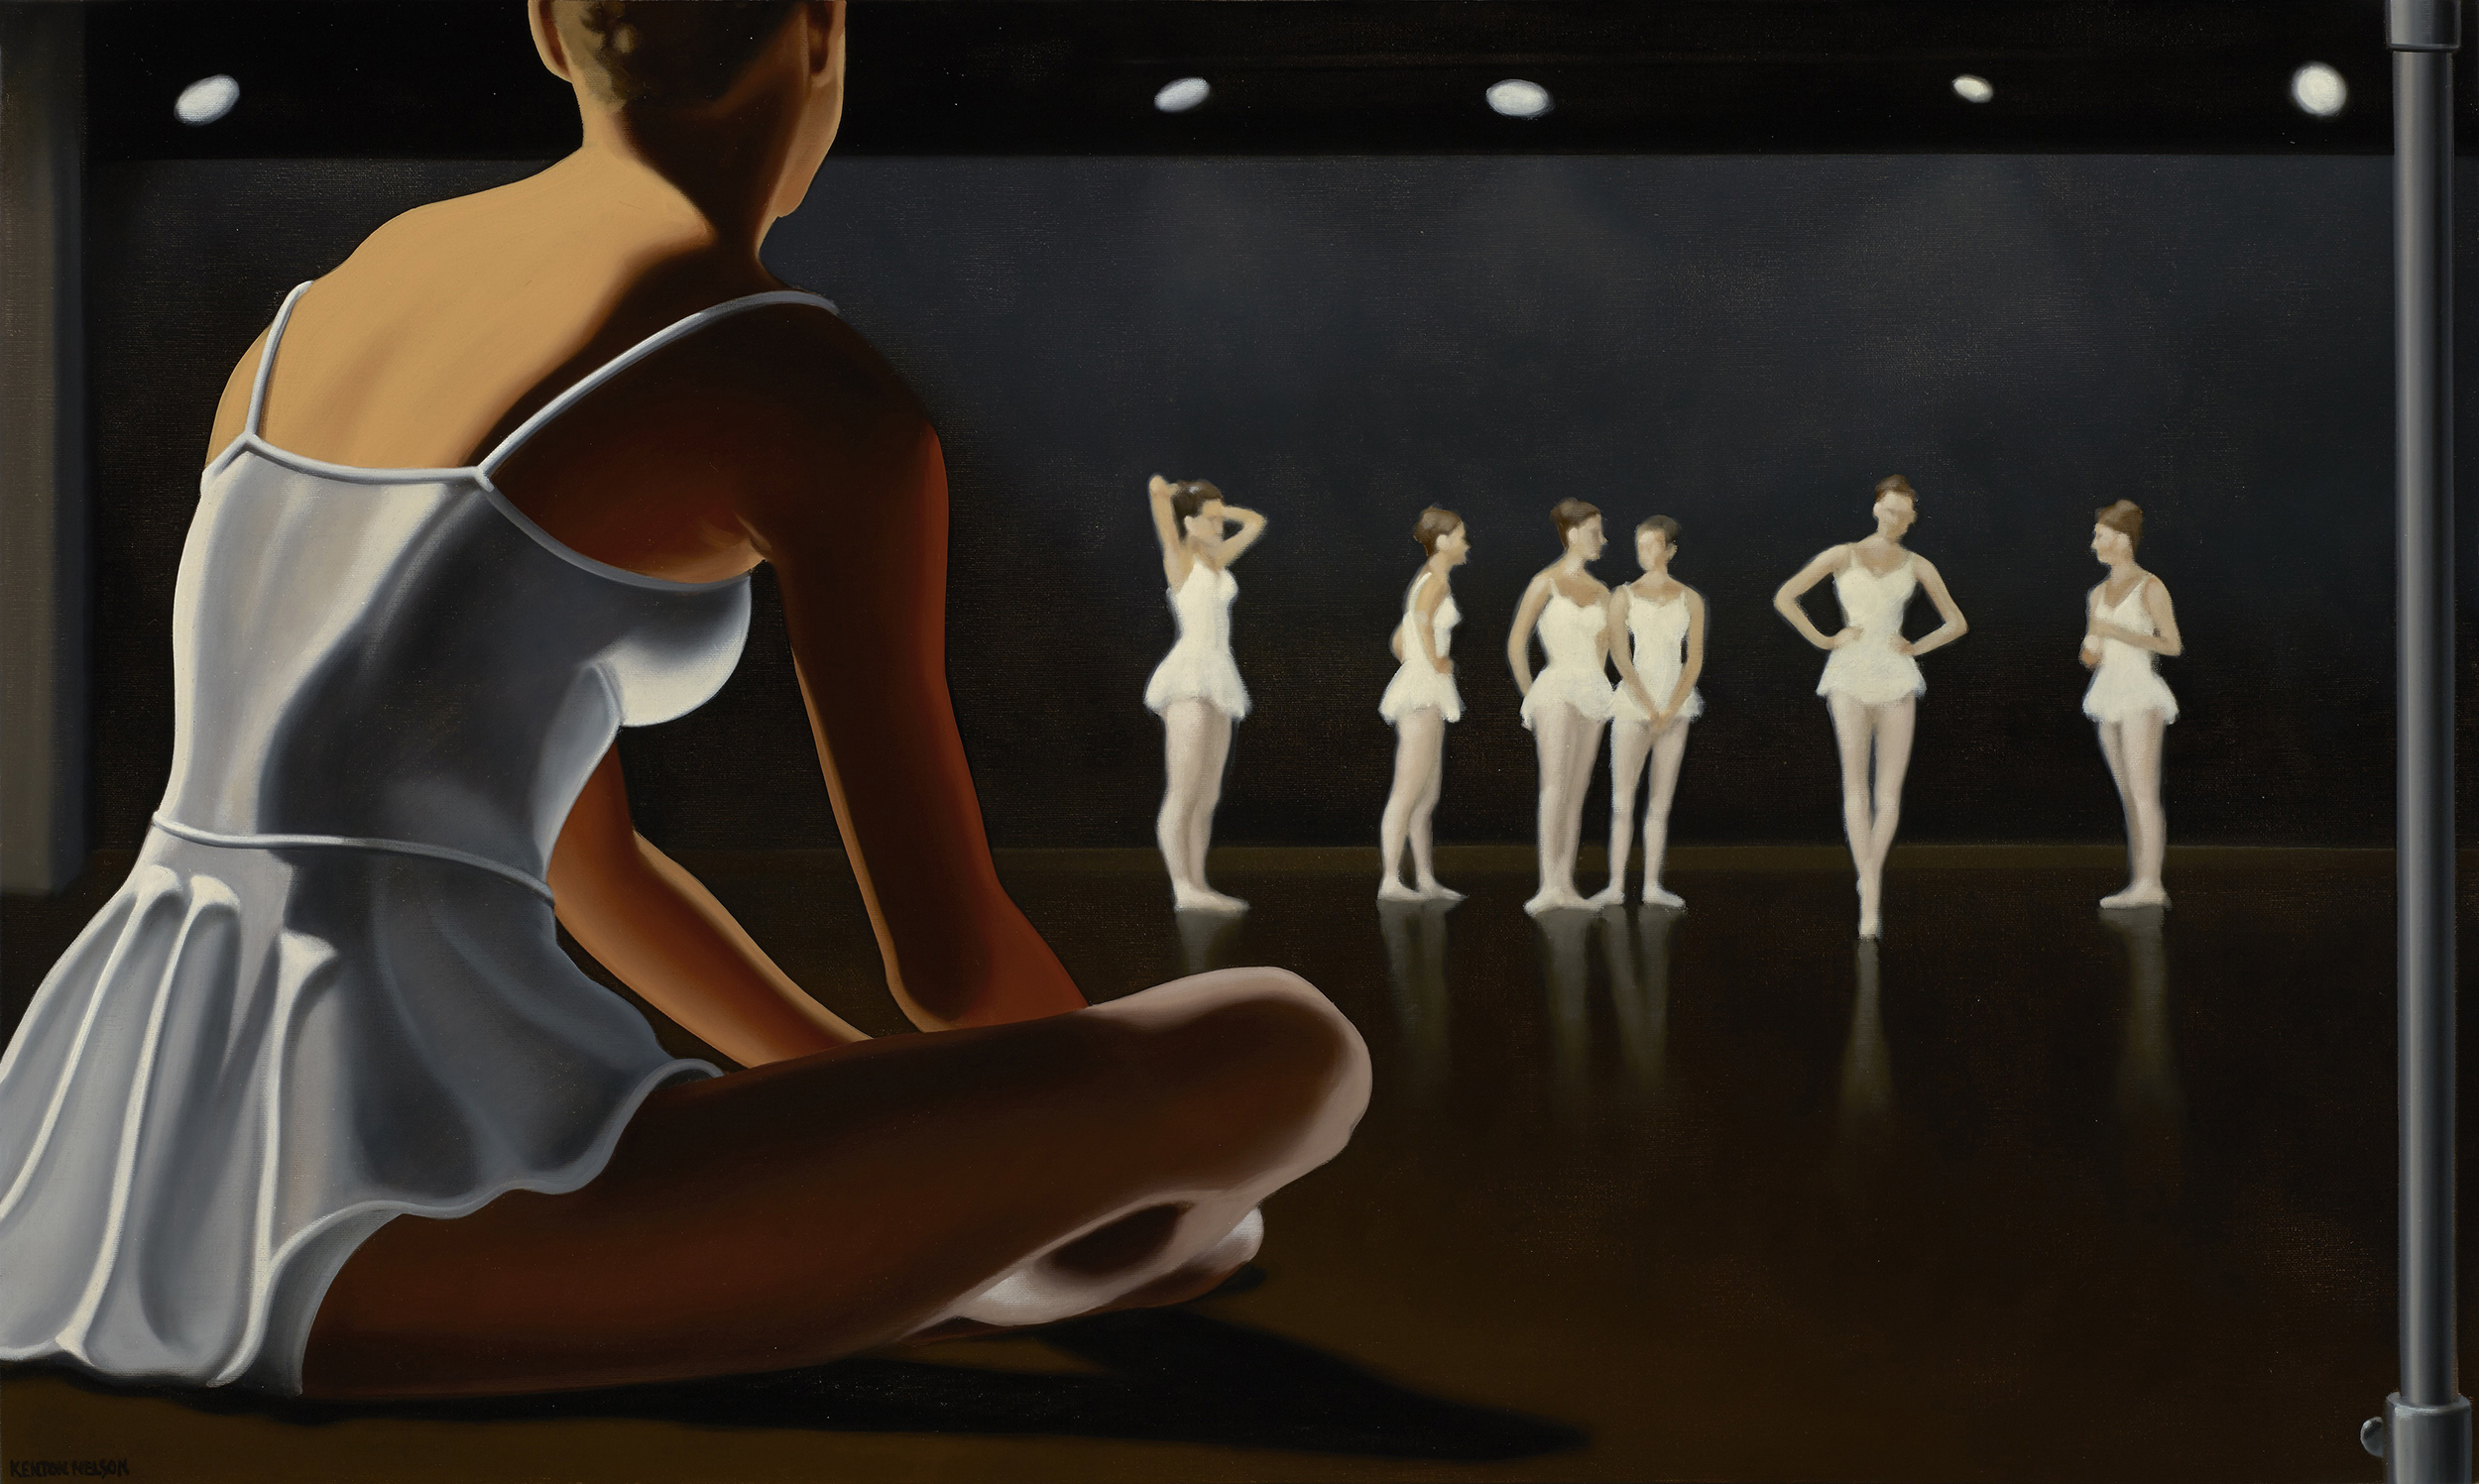 Kenton Nelson_To Wait.jpg